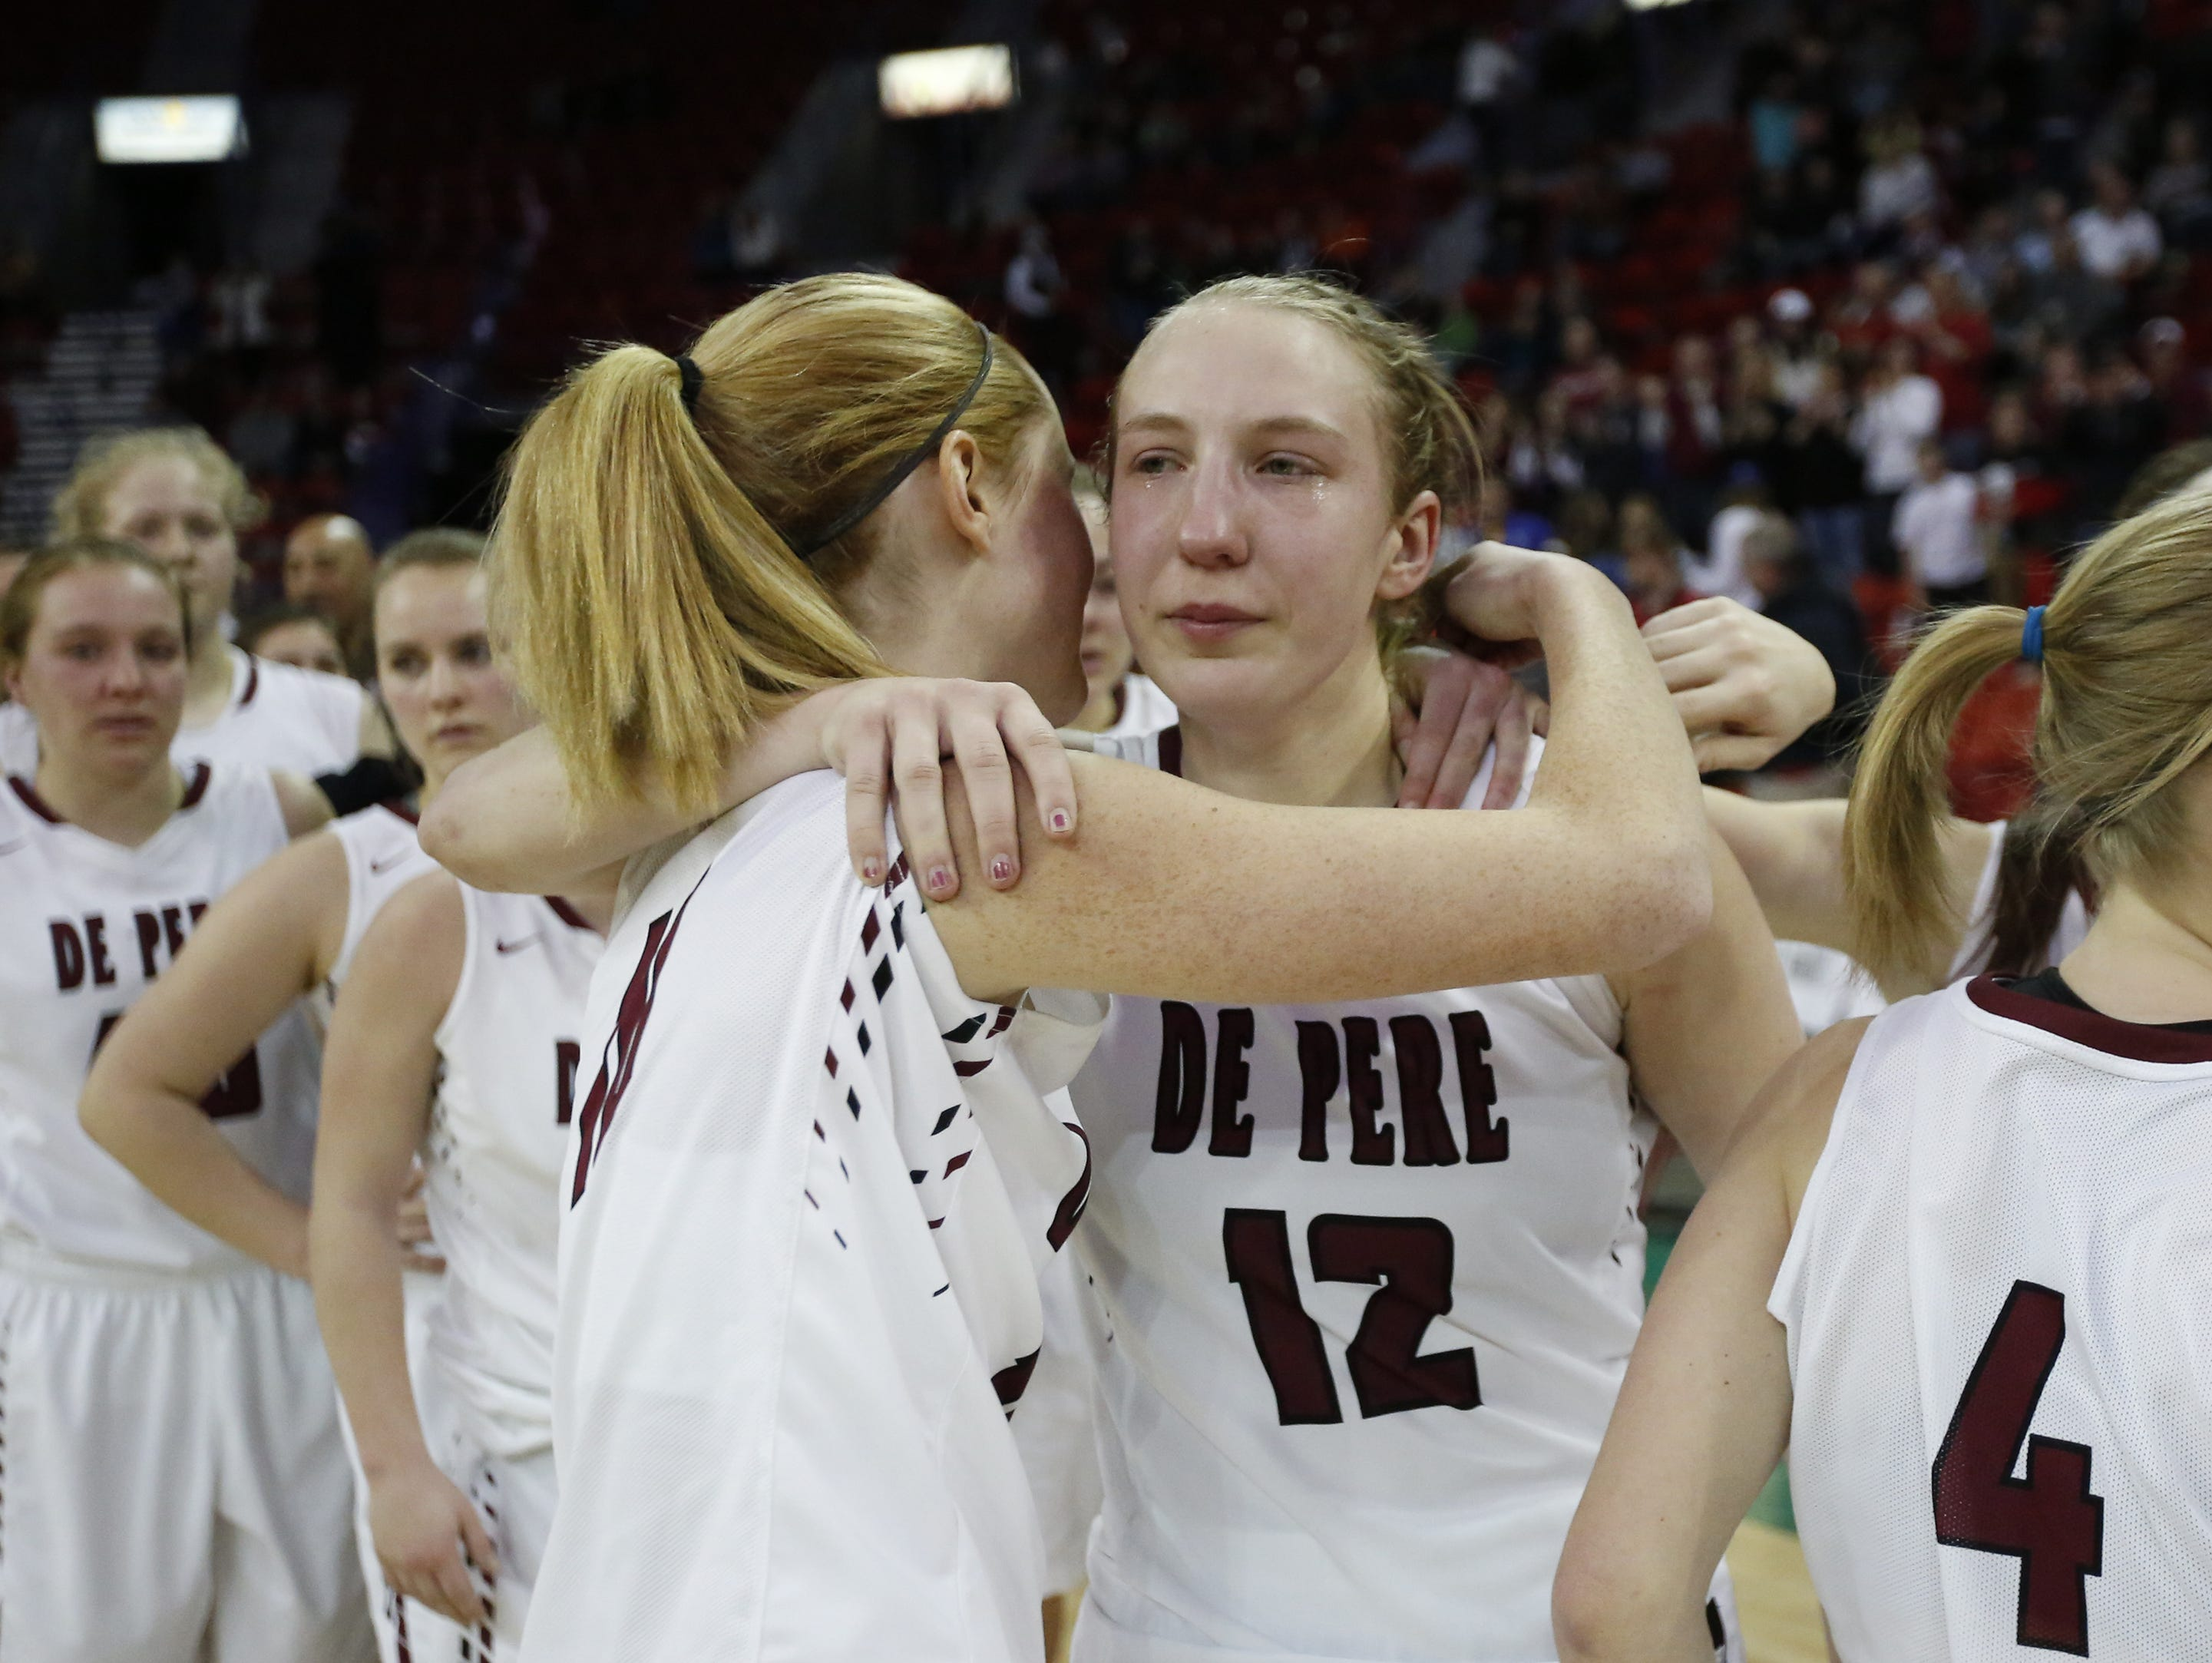 De Pere's Lizzie Miller hugs teammate Lauren DeMille after their loss to Appleton North in the WIAA Division 1 State Tournament girls basketball championship game Saturday at the Resch Center.